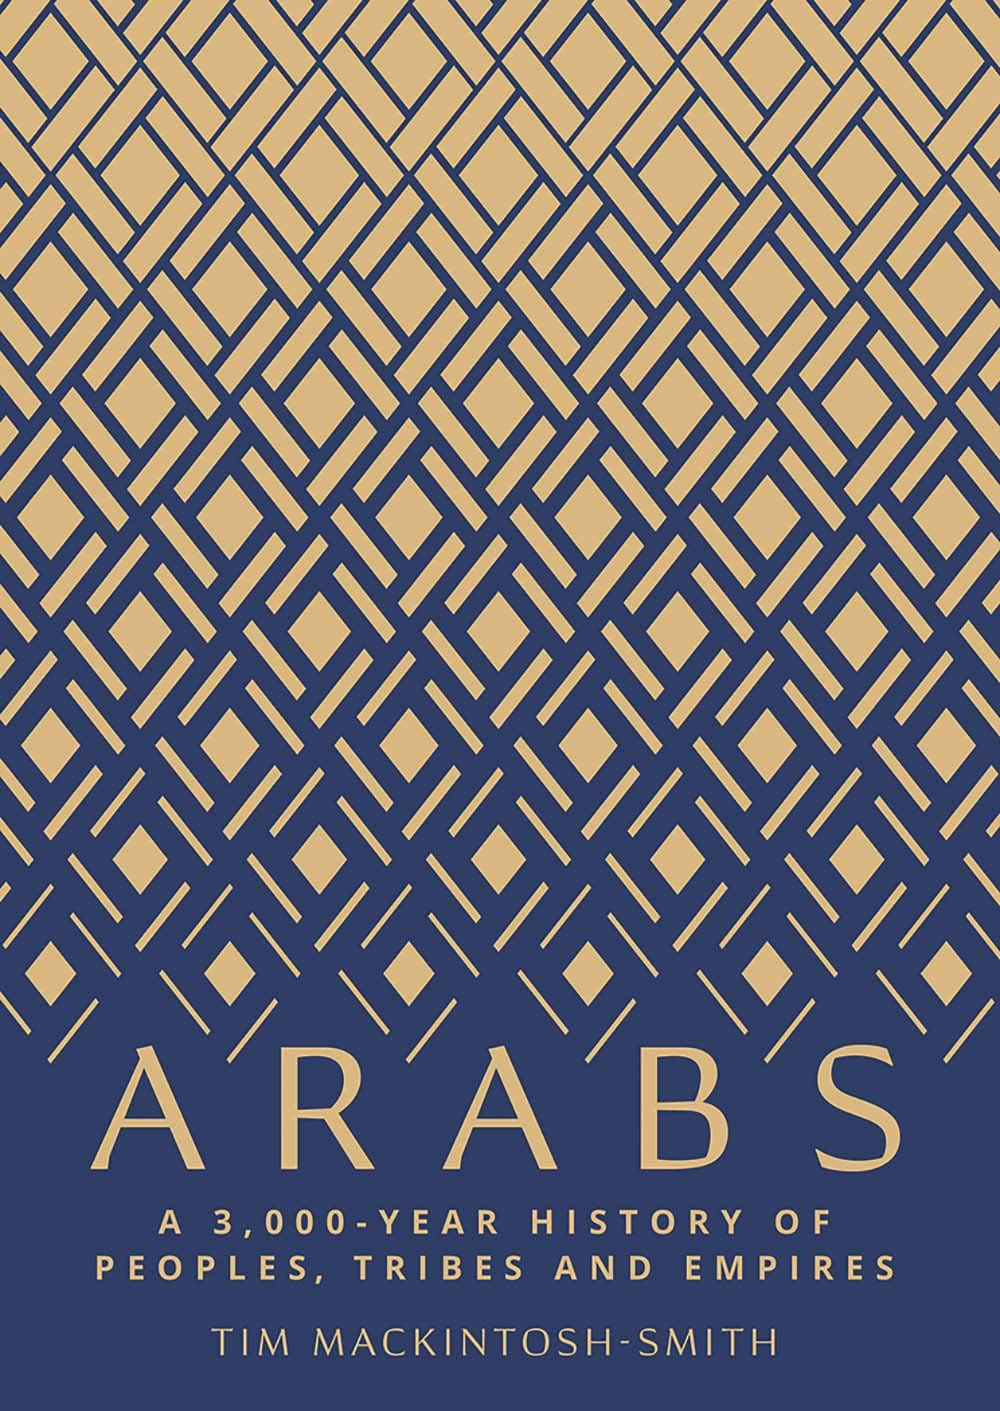 Arabs: A 3,000-Year History of Peoples, Tribes and Empires por Tim Mackintosh-Smith